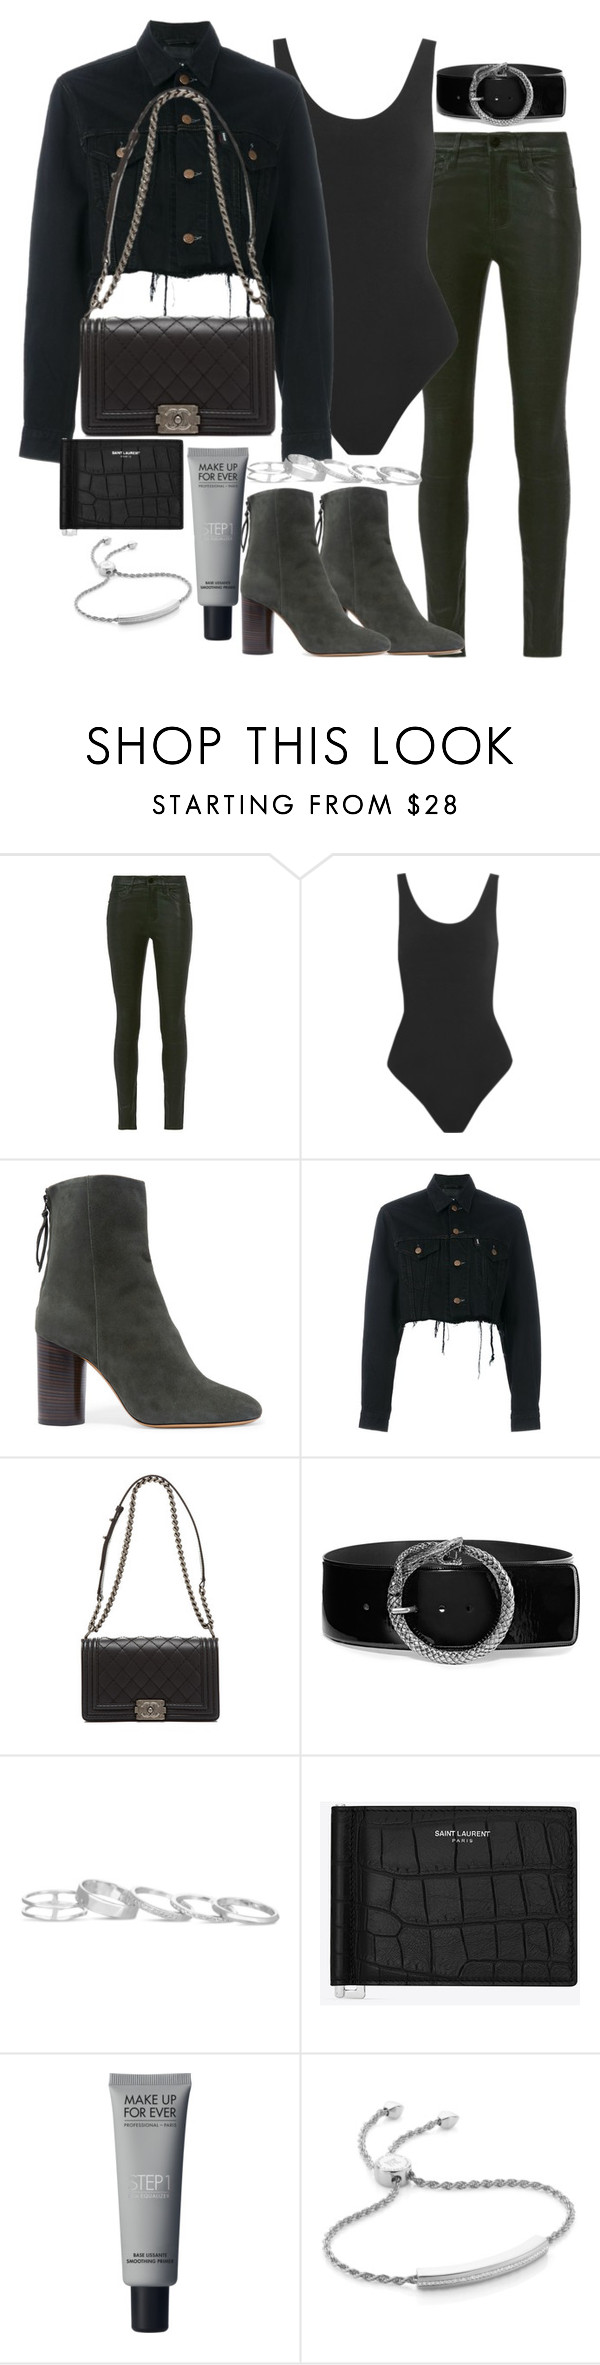 """Untitled #2692"" by theeuropeancloset on Polyvore featuring Frame Denim, Yummie by Heather Thomson, Isabel Marant, Blackyoto, Yves Saint Laurent, Kendra Scott and Monica Vinader"